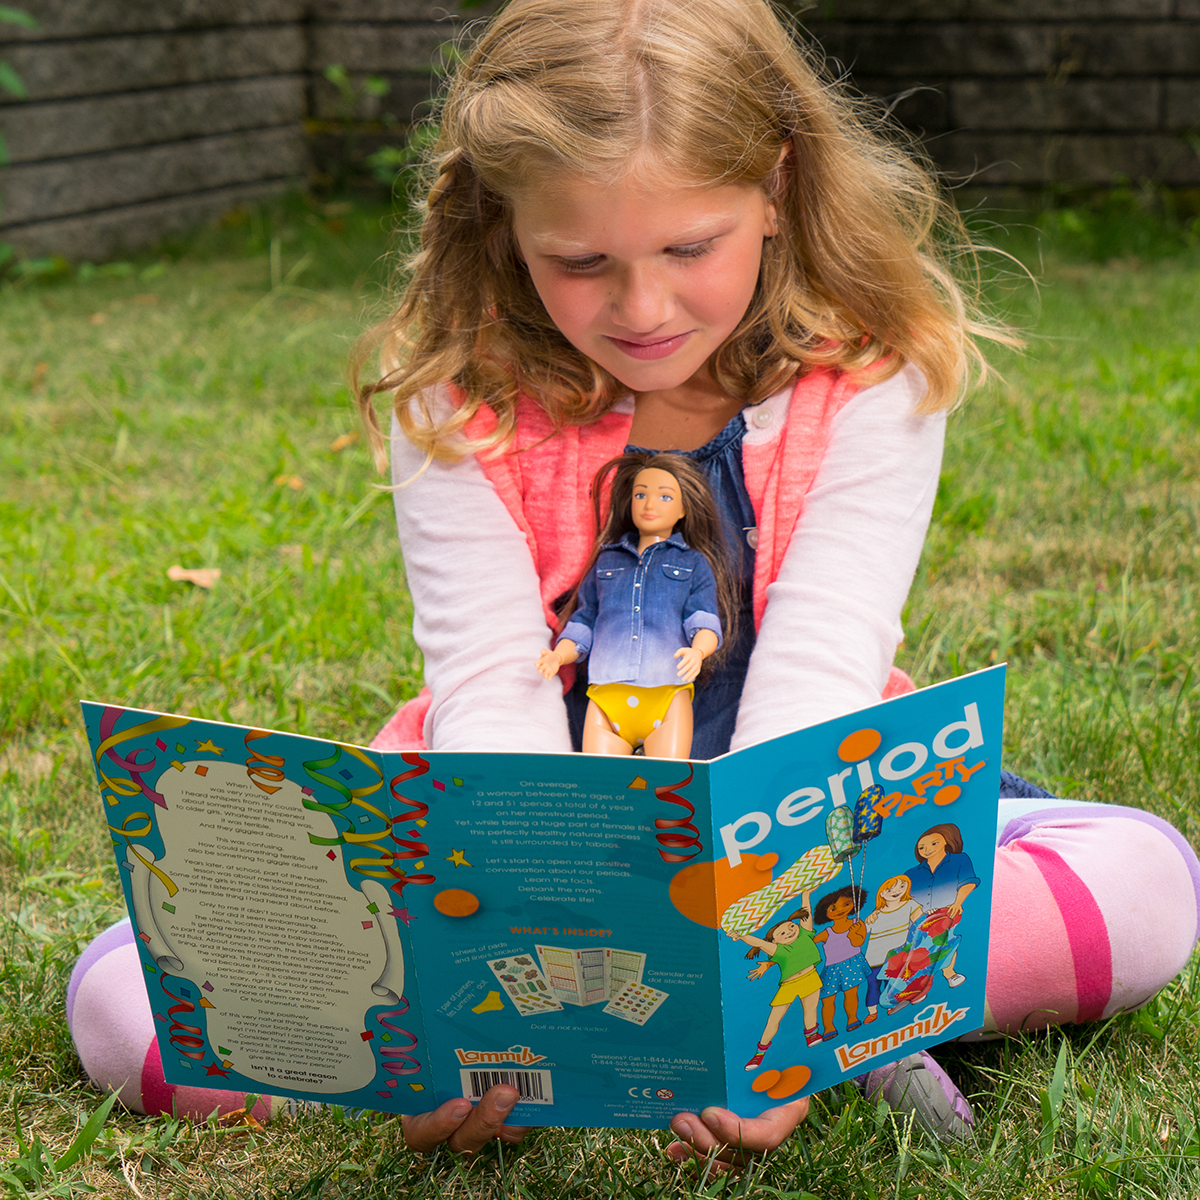 A young girl reads about menstruation while holding a Lammily doll. Image credit: LAMMILY.